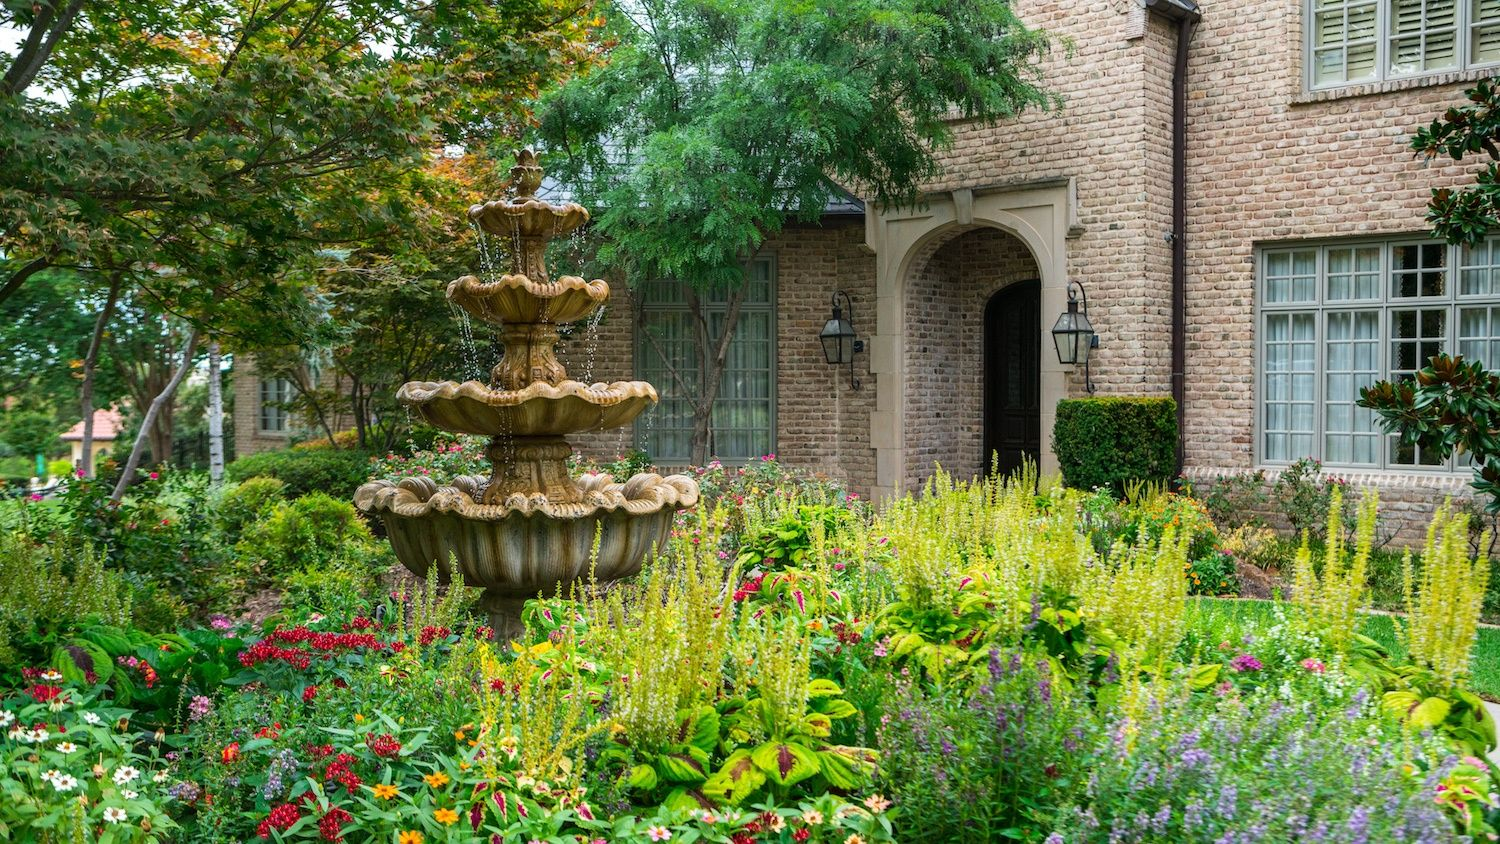 fountain-water-feature-plants-flowers-tree